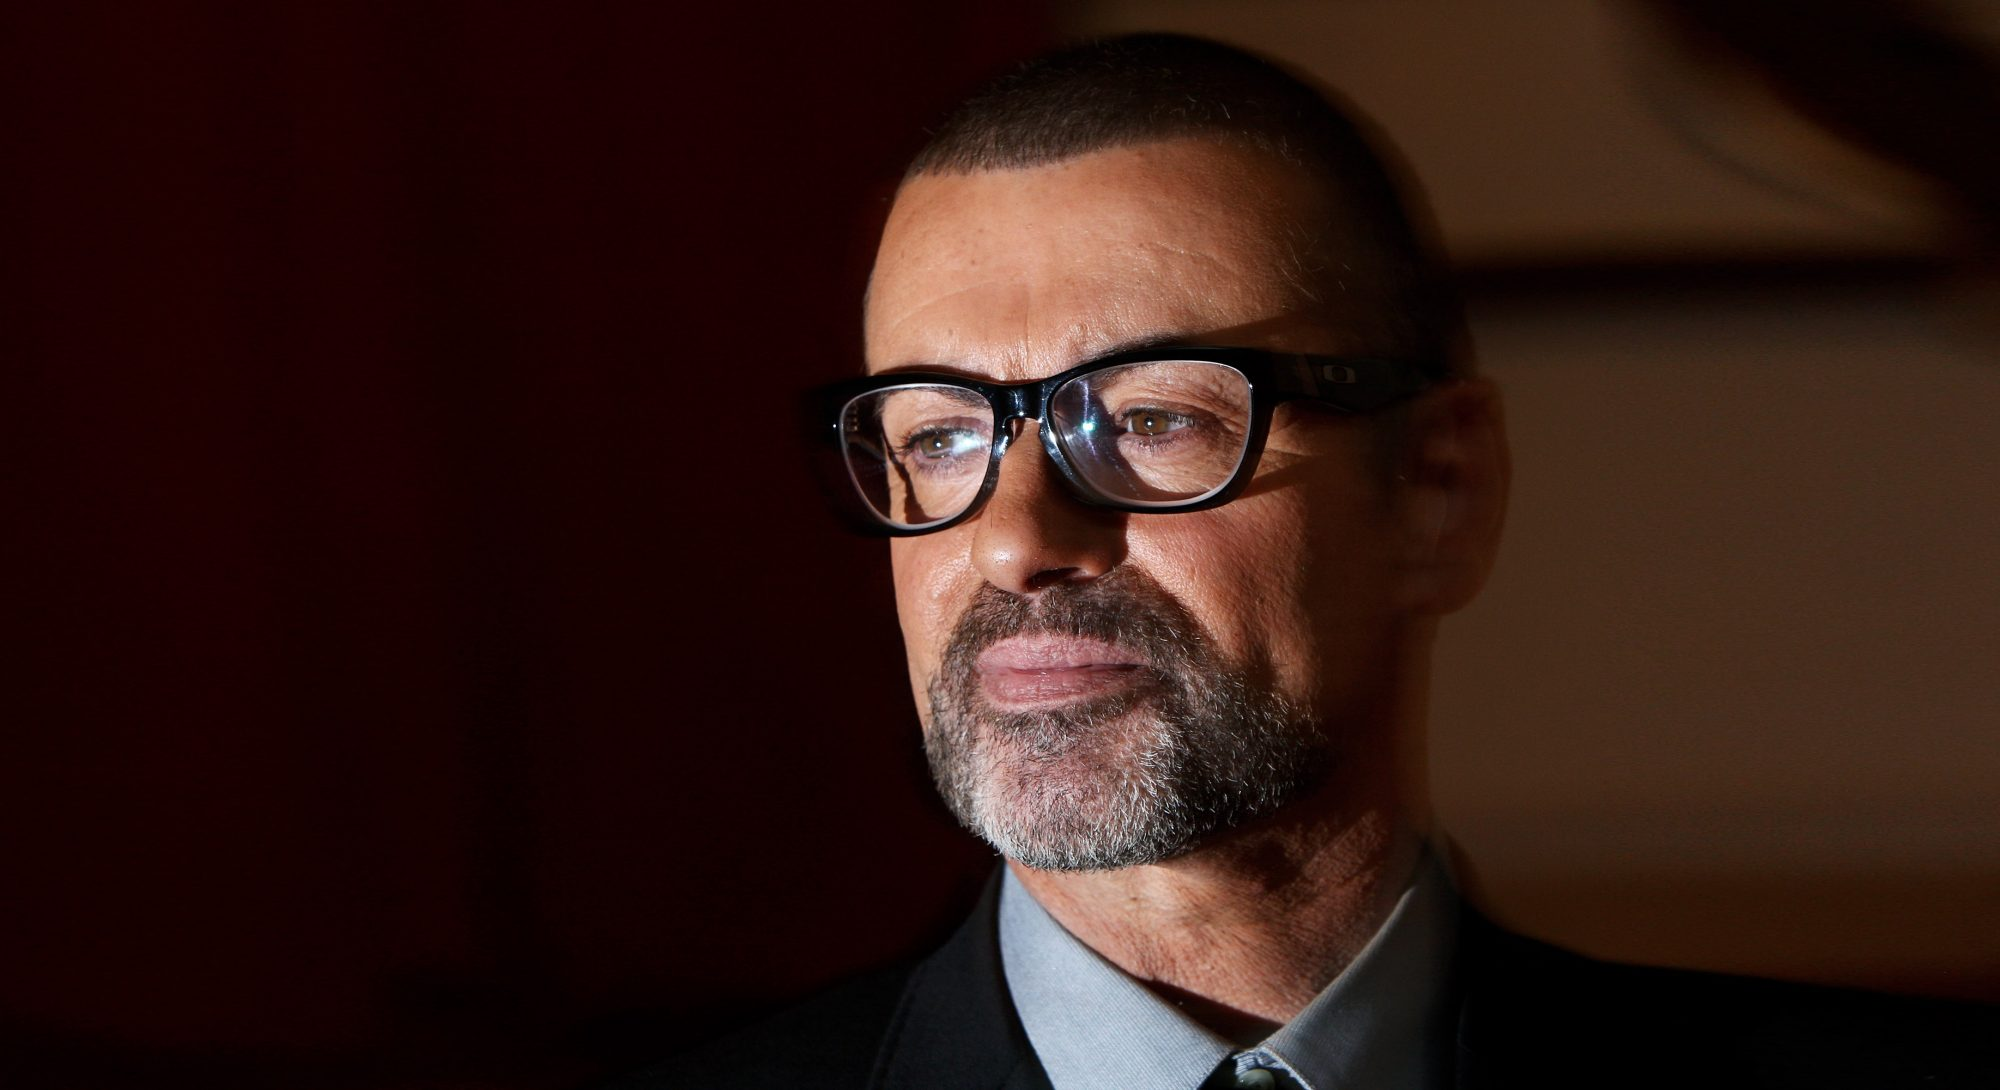 george-michael-glasses-so-handsome-but-sad